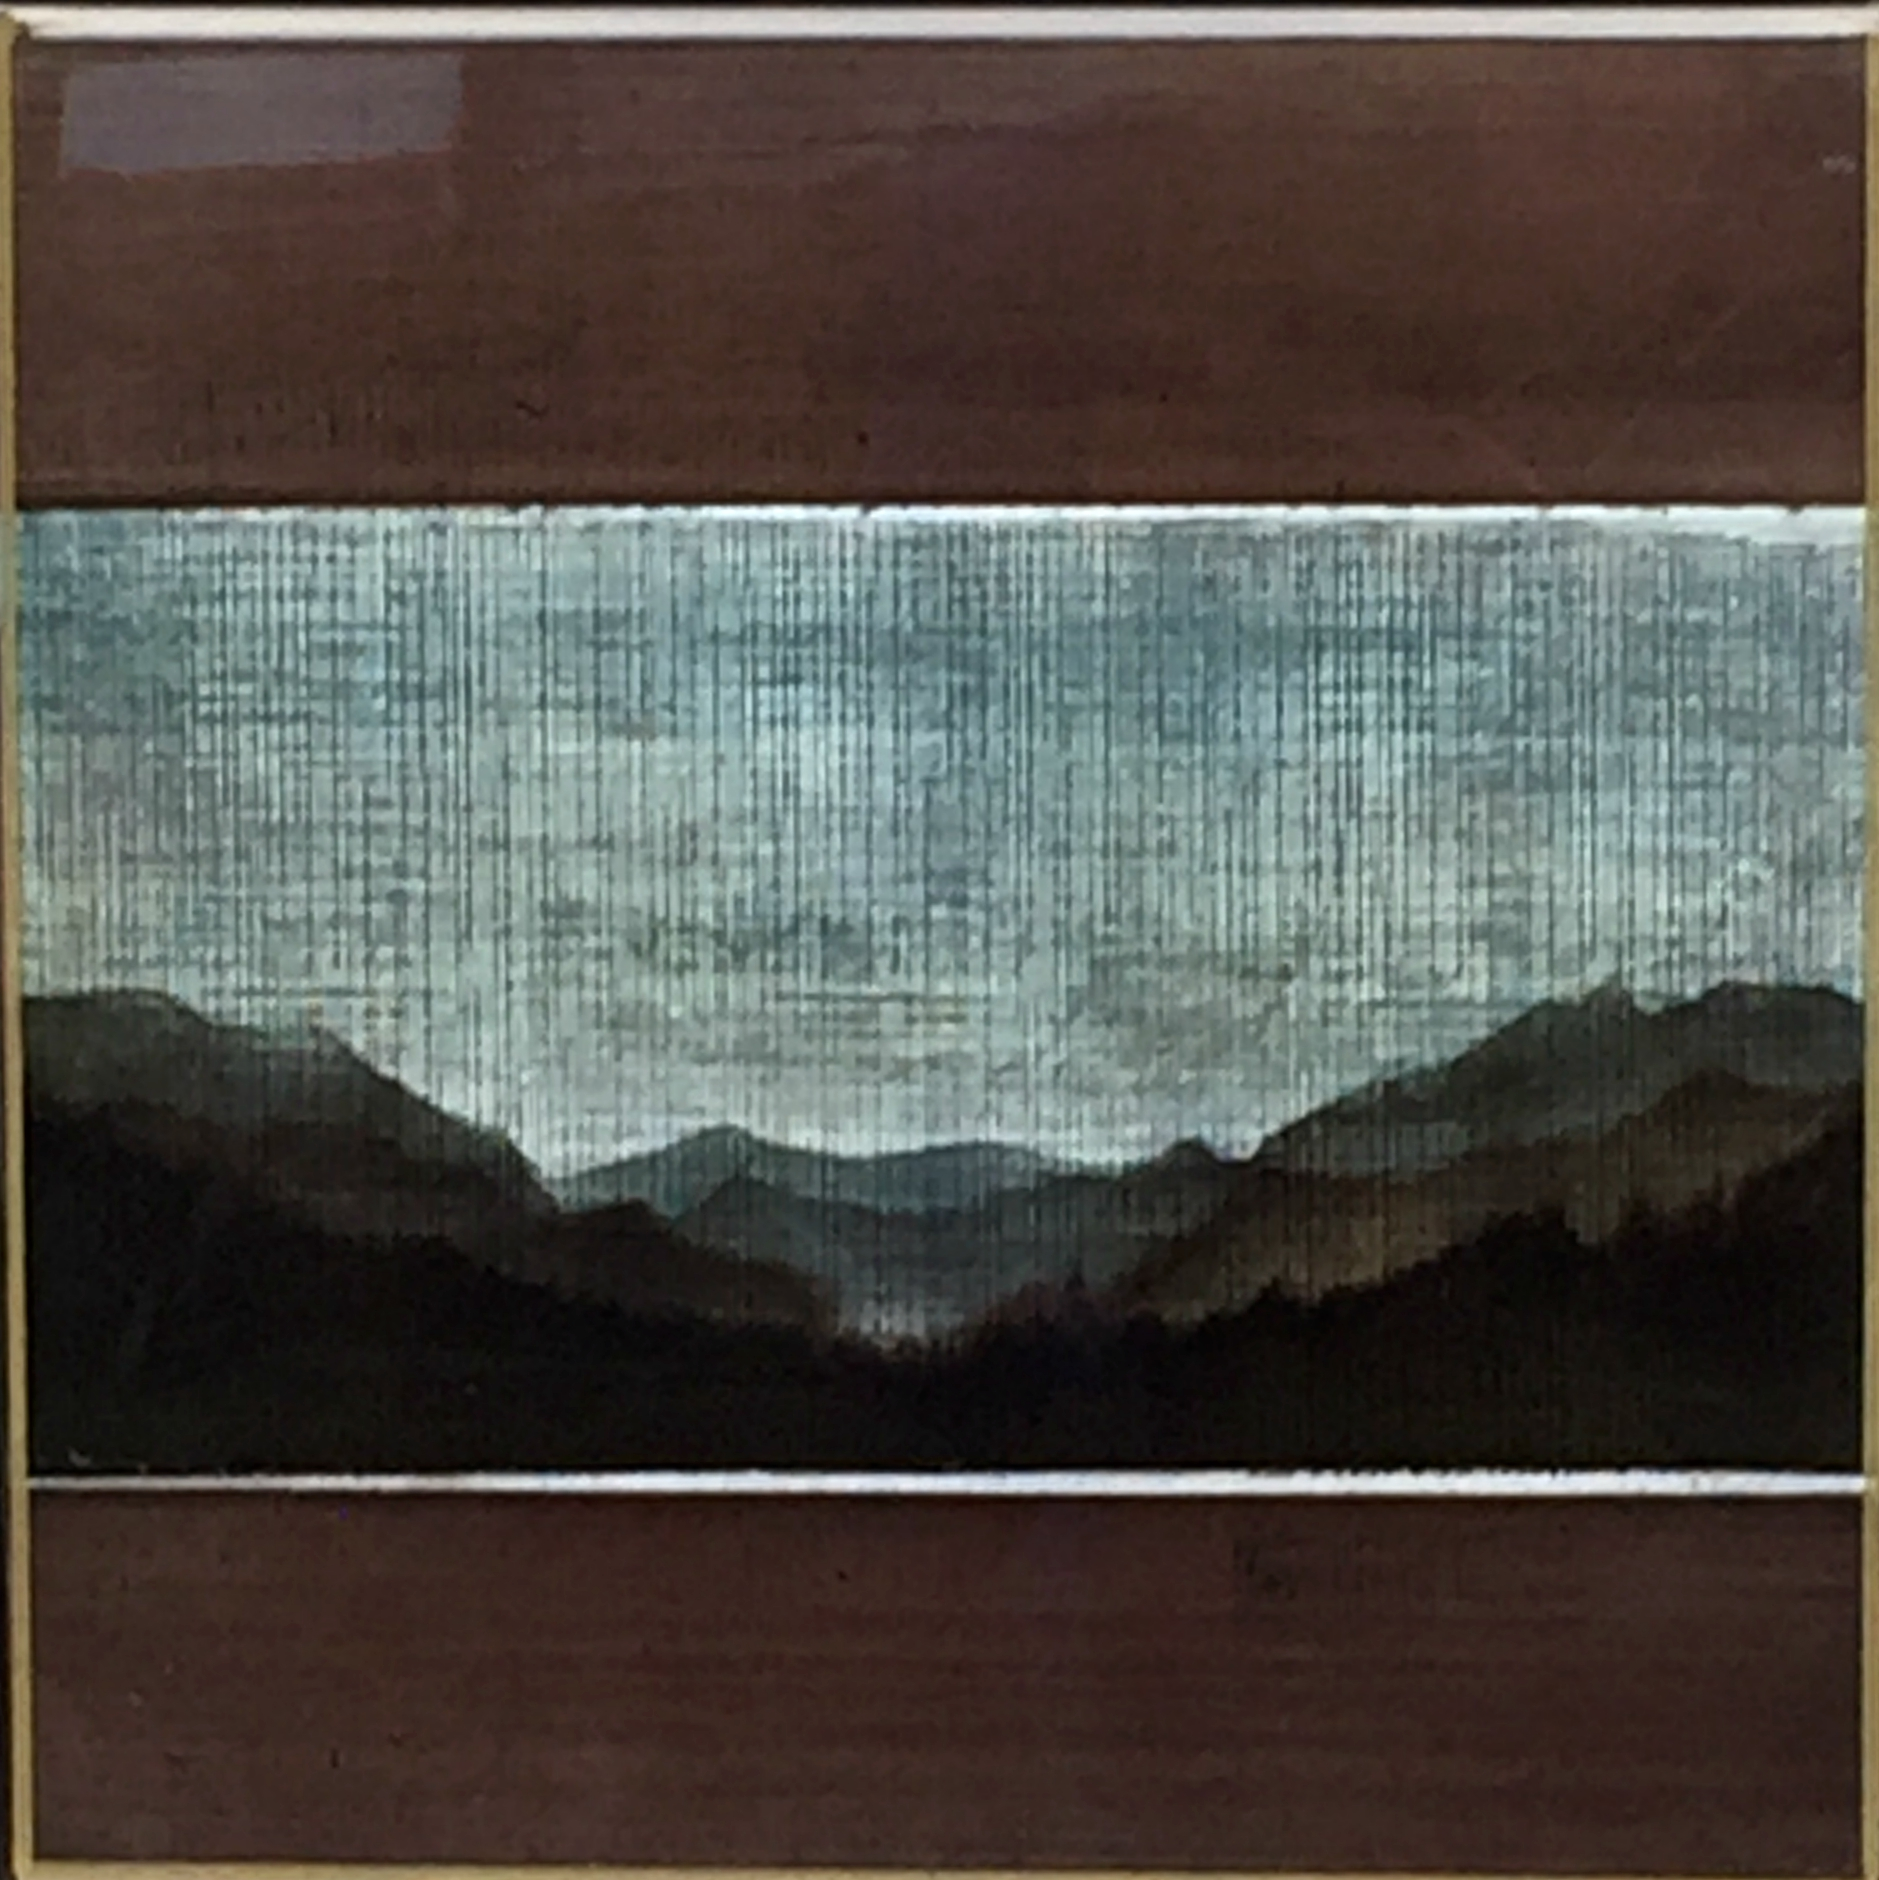 #171, mixed media landscape painting by David Graff | Effusion Art Gallery + Cast Glass Studio, Invermere BC